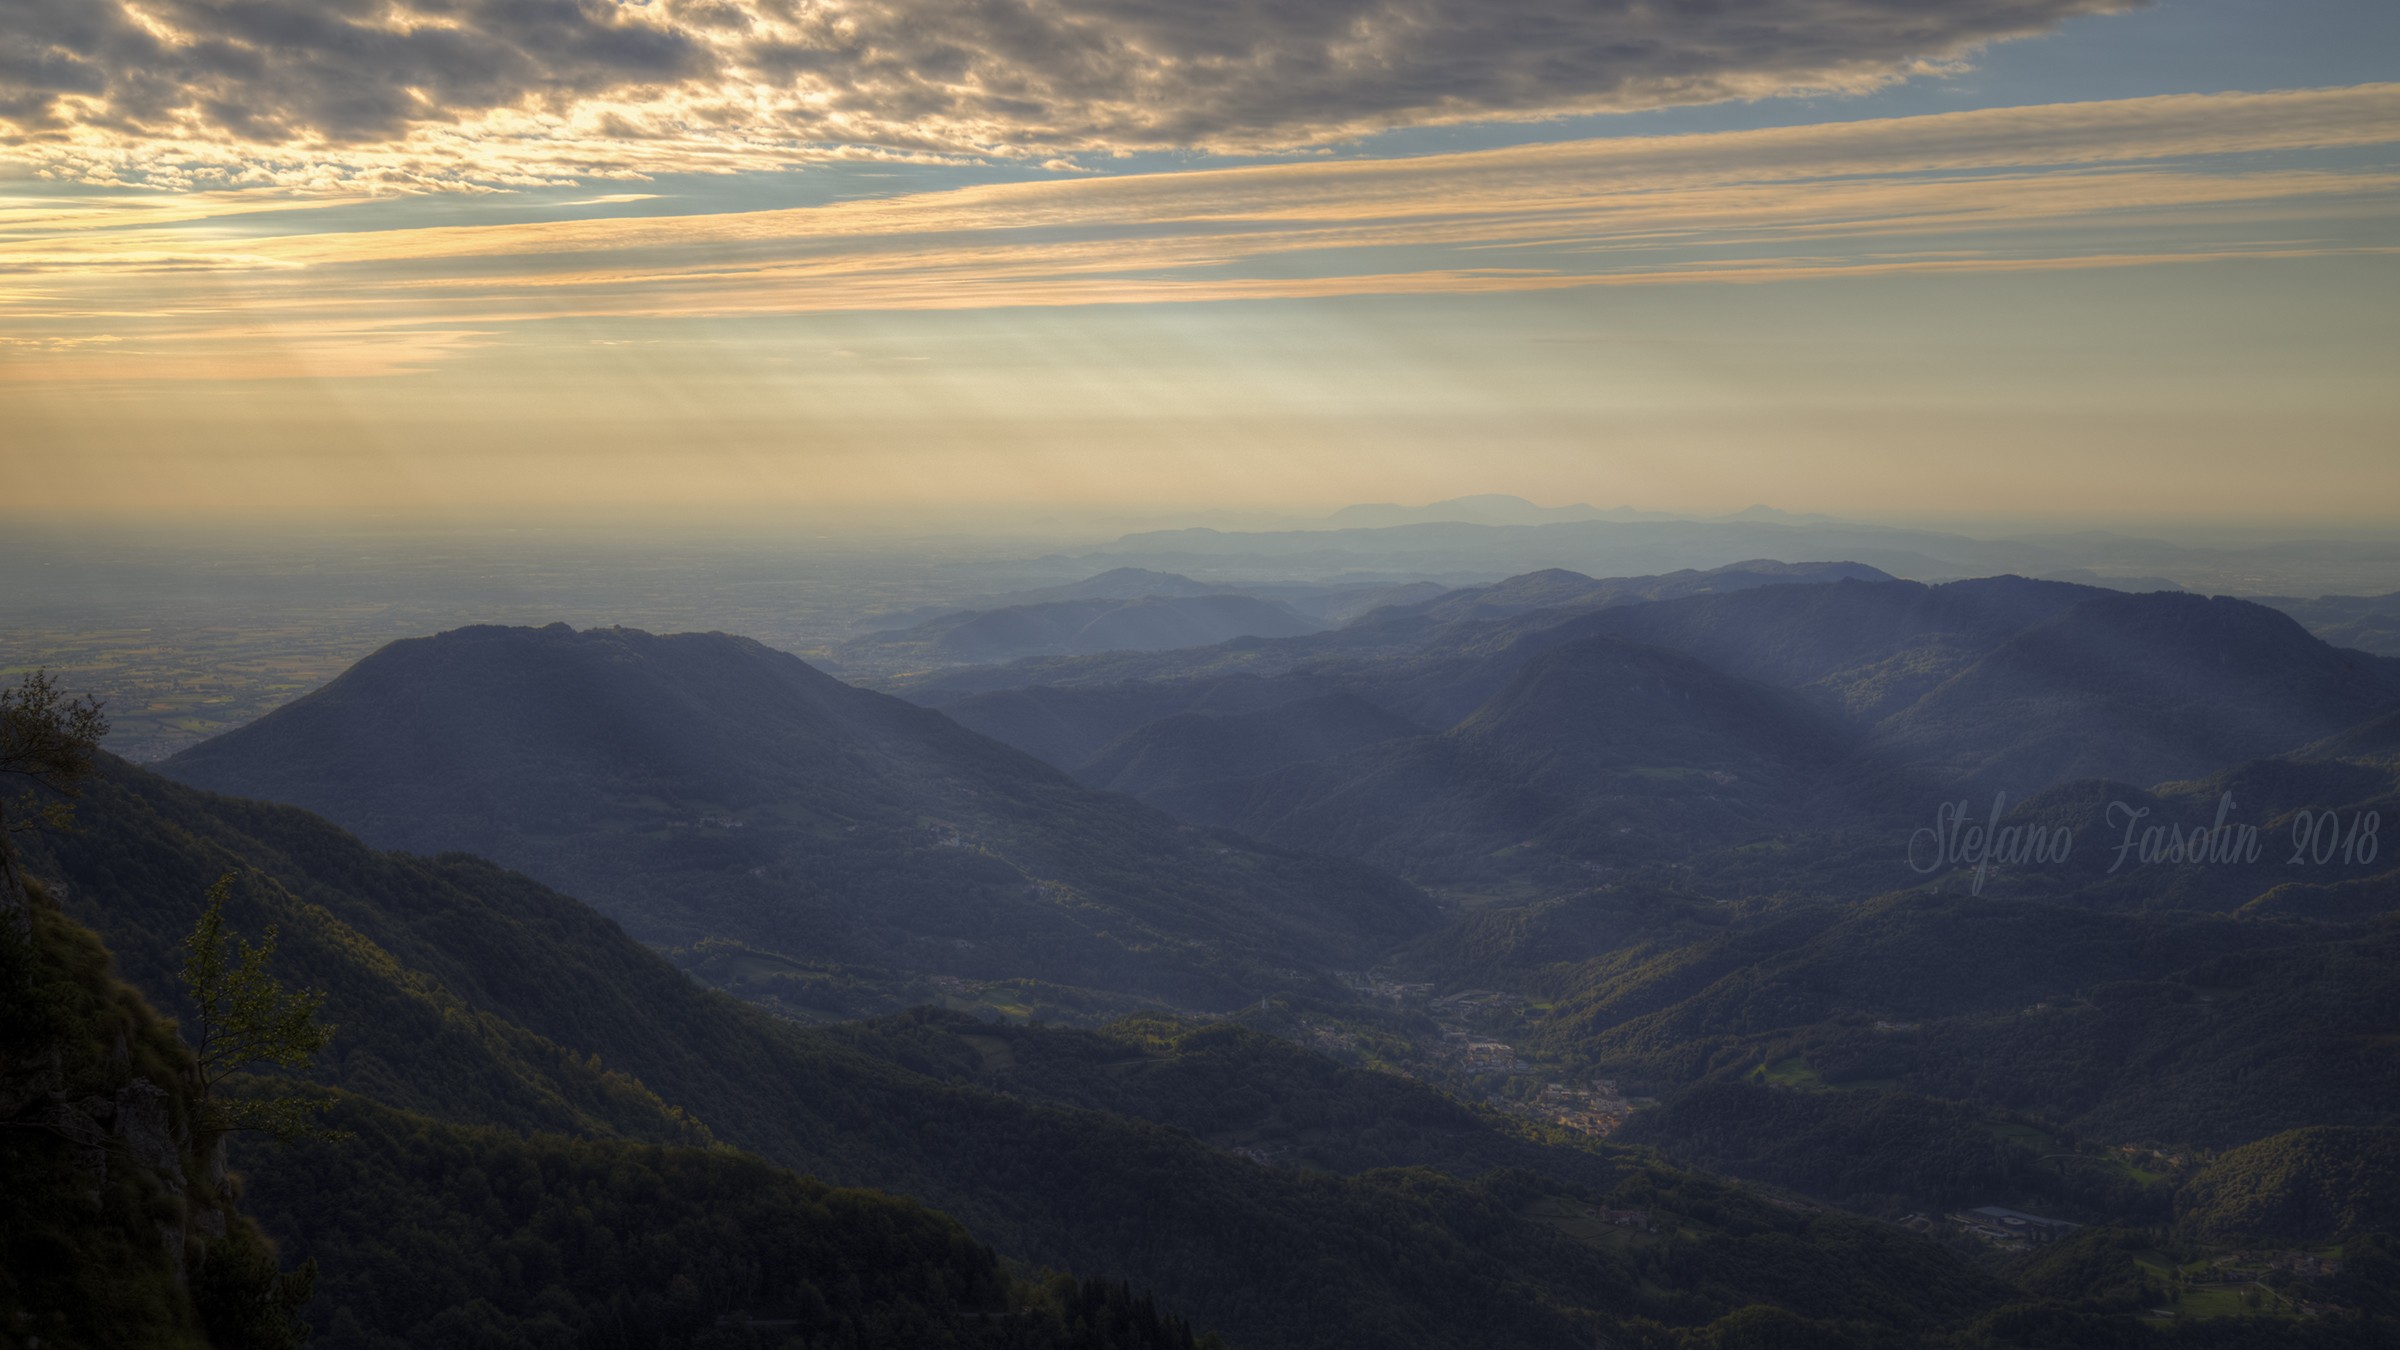 Pasubio Valleys from 52 galleries...